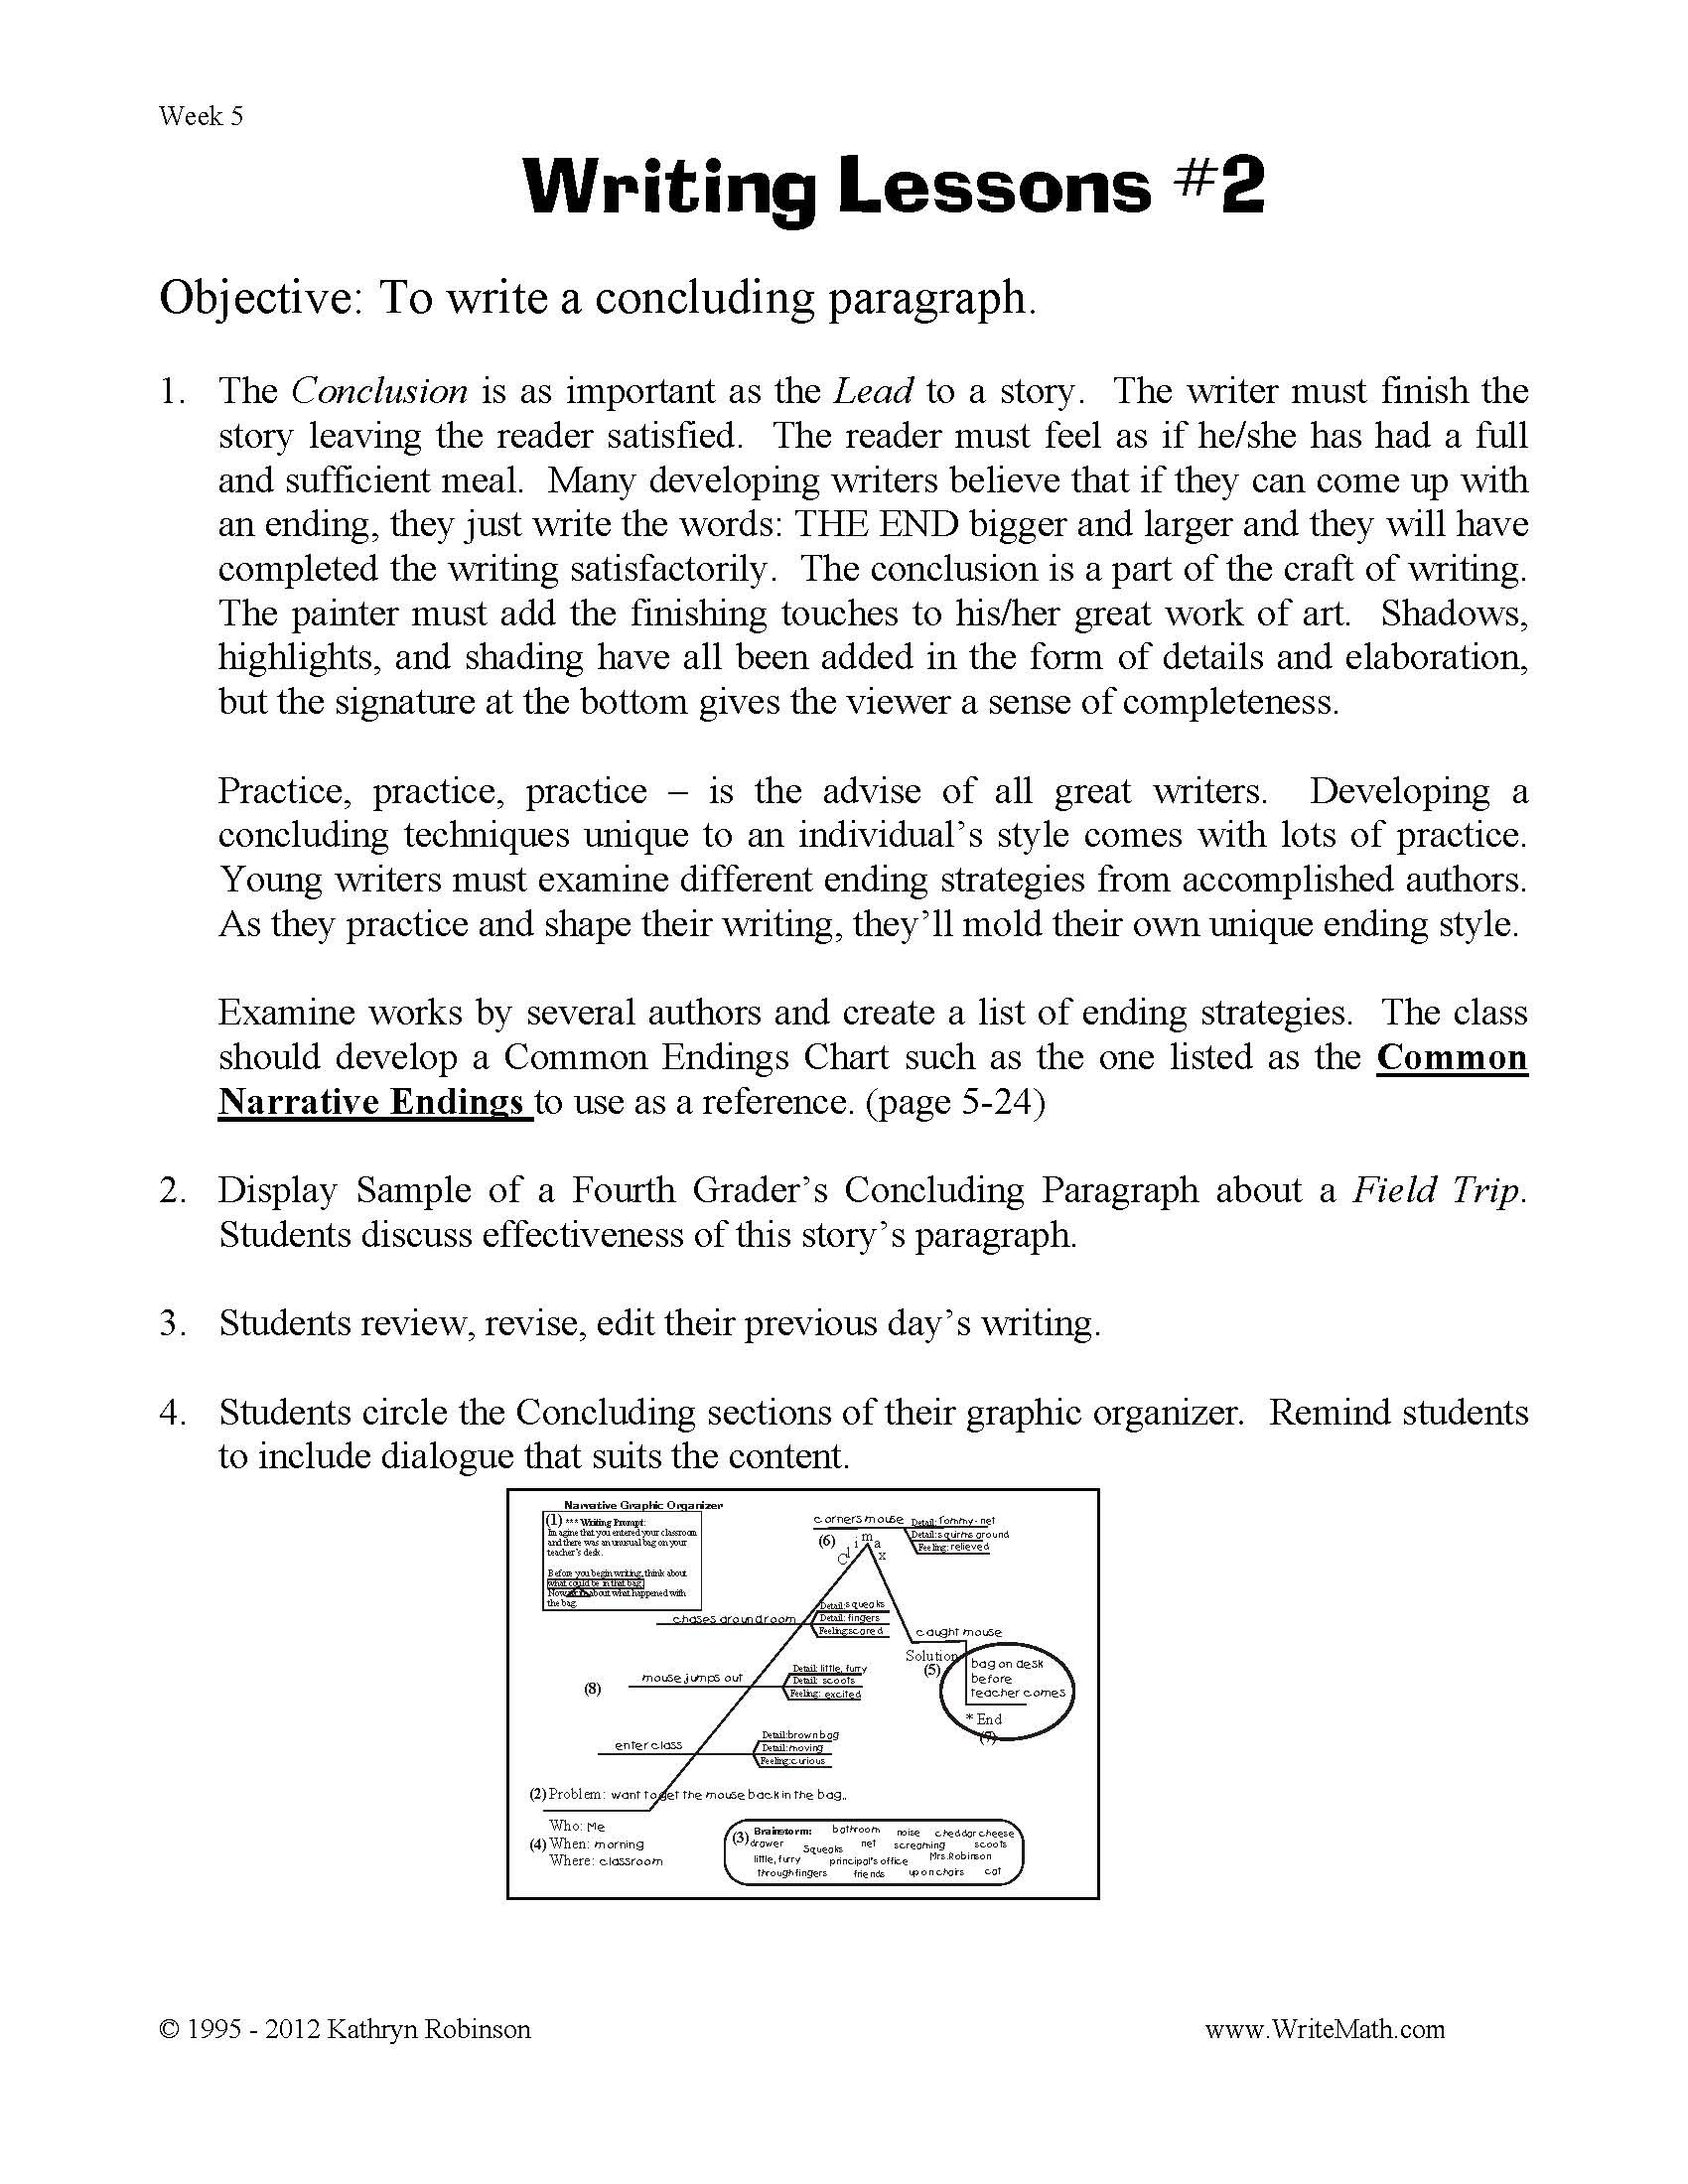 6th Grade Essay Writing Worksheets Worksheet for Writing topic for Students